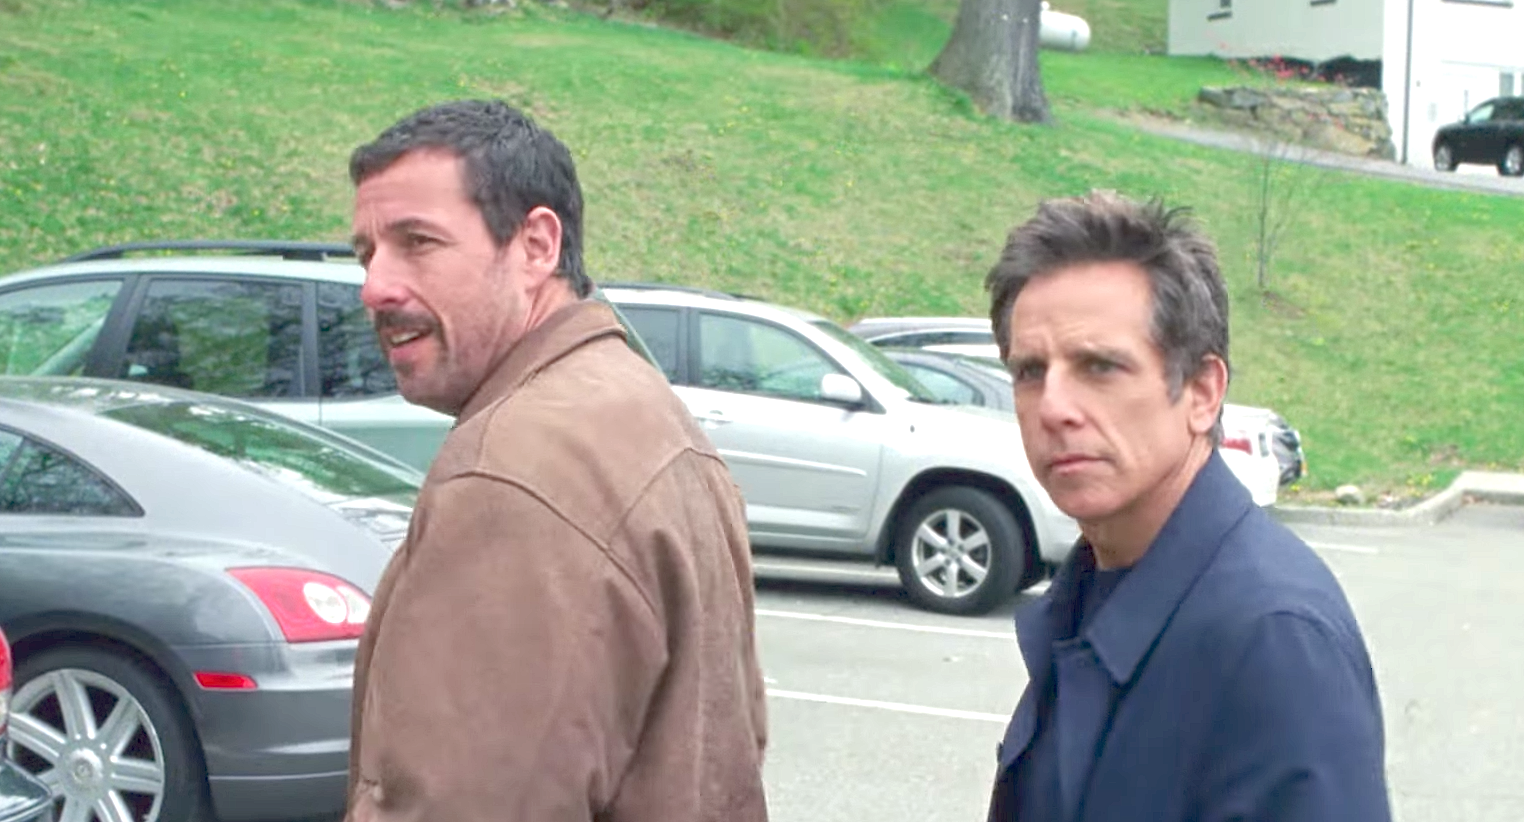 The Meyerowitz Stories - New & Selected (2017), Adam Sandler, Ben Stiller